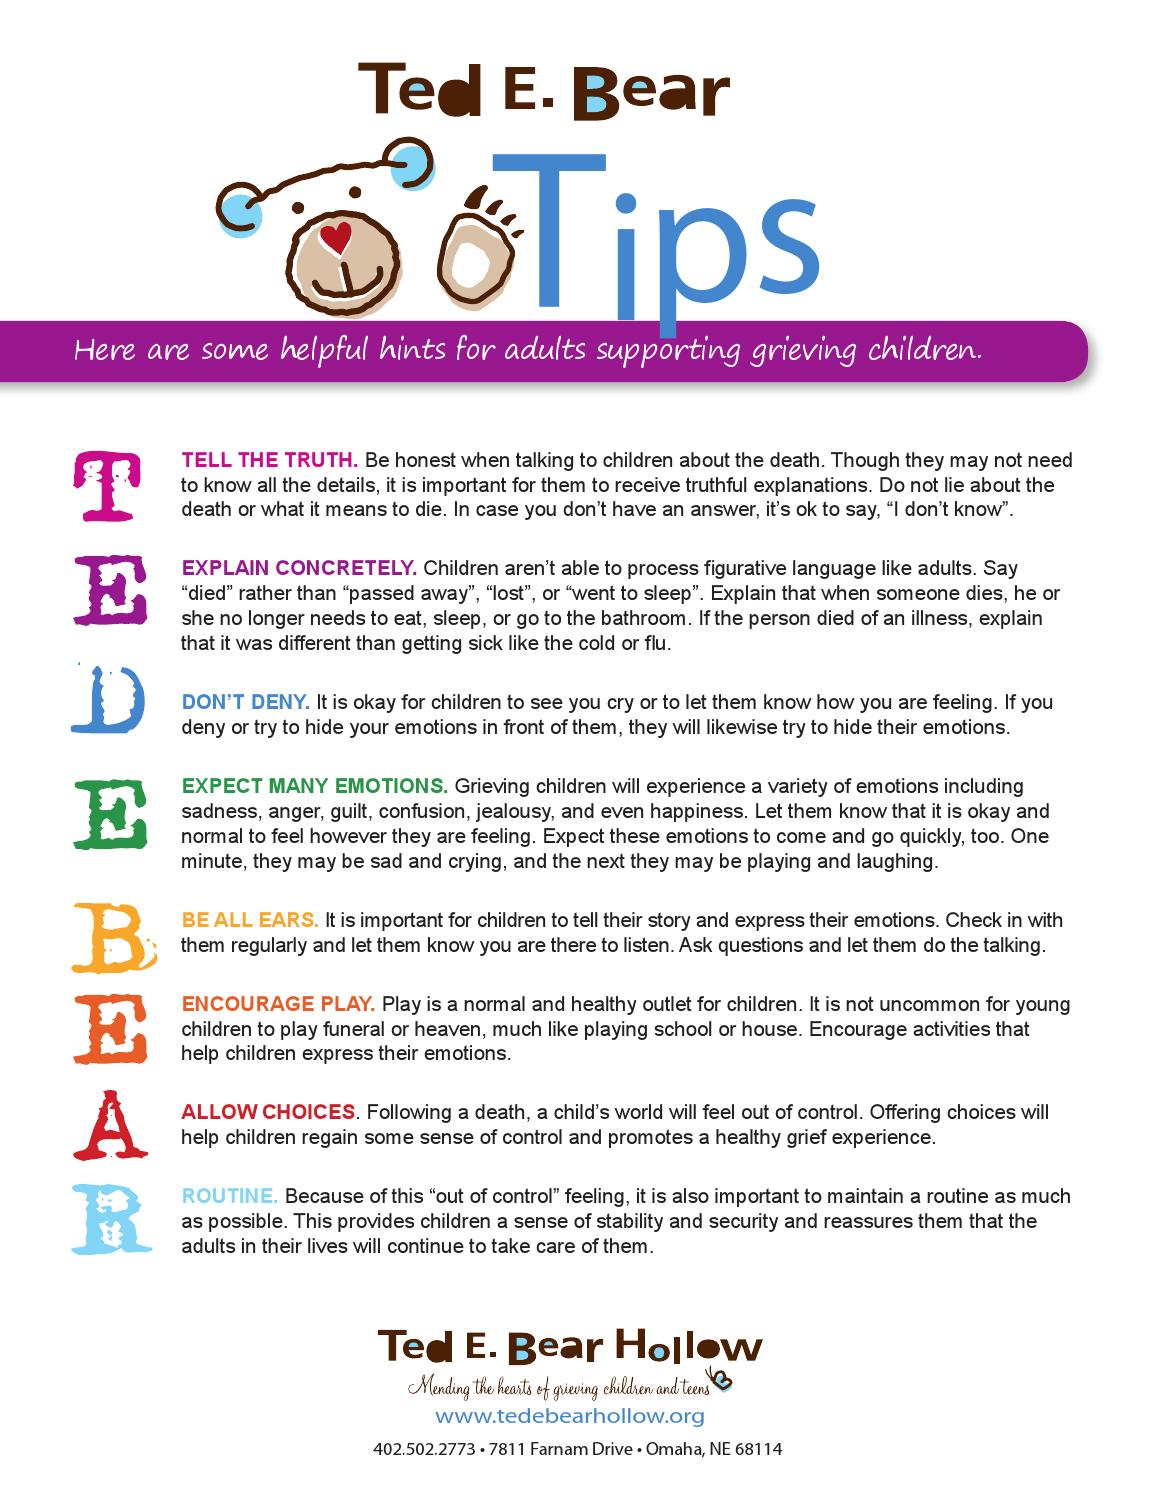 Endearing Ted Bear Tips By Ted Bear Hollow Issuu What To Say When Someone Passes Away Suddenly What To Say When Someone S Far Passed Away inspiration What To Say When Someone Passes Away